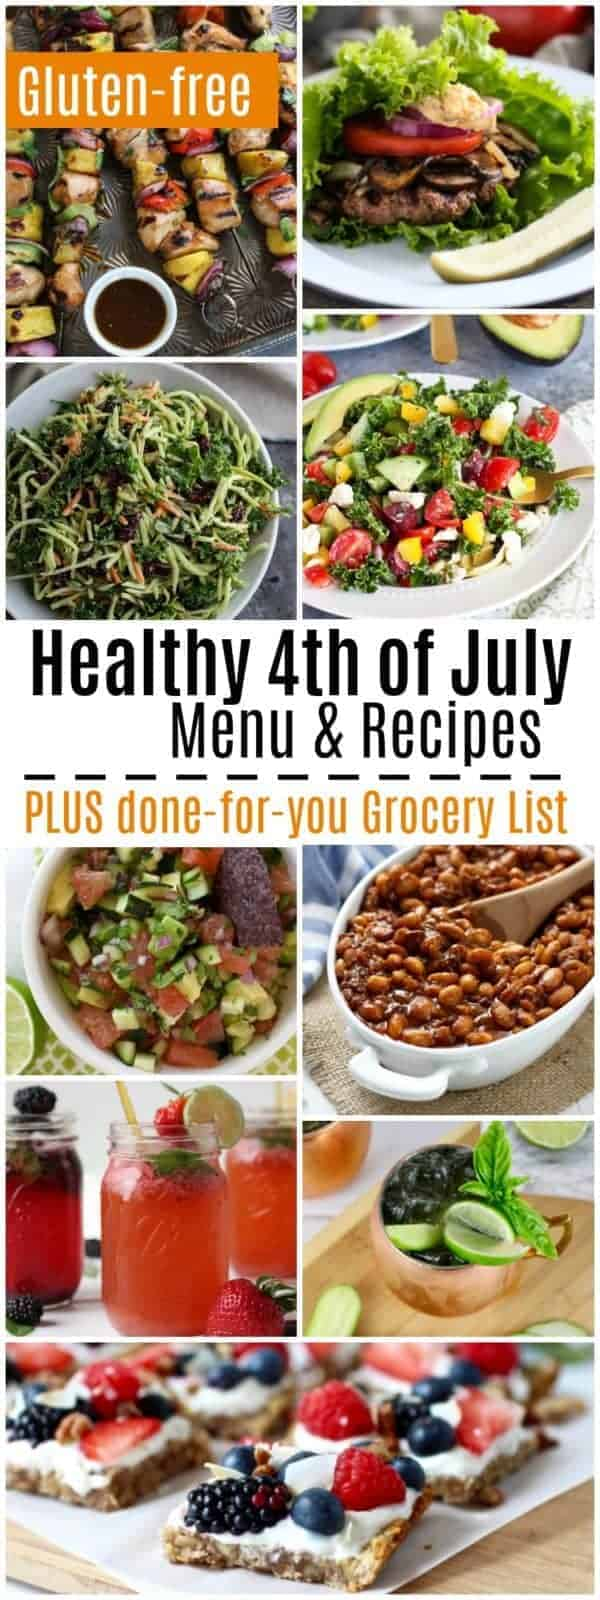 Healthy 4th of July Menu, Recipes & Grocery List | The Real Food Dietitians | http://therealfoodrds.com/healthy-4th-of-july-menu/